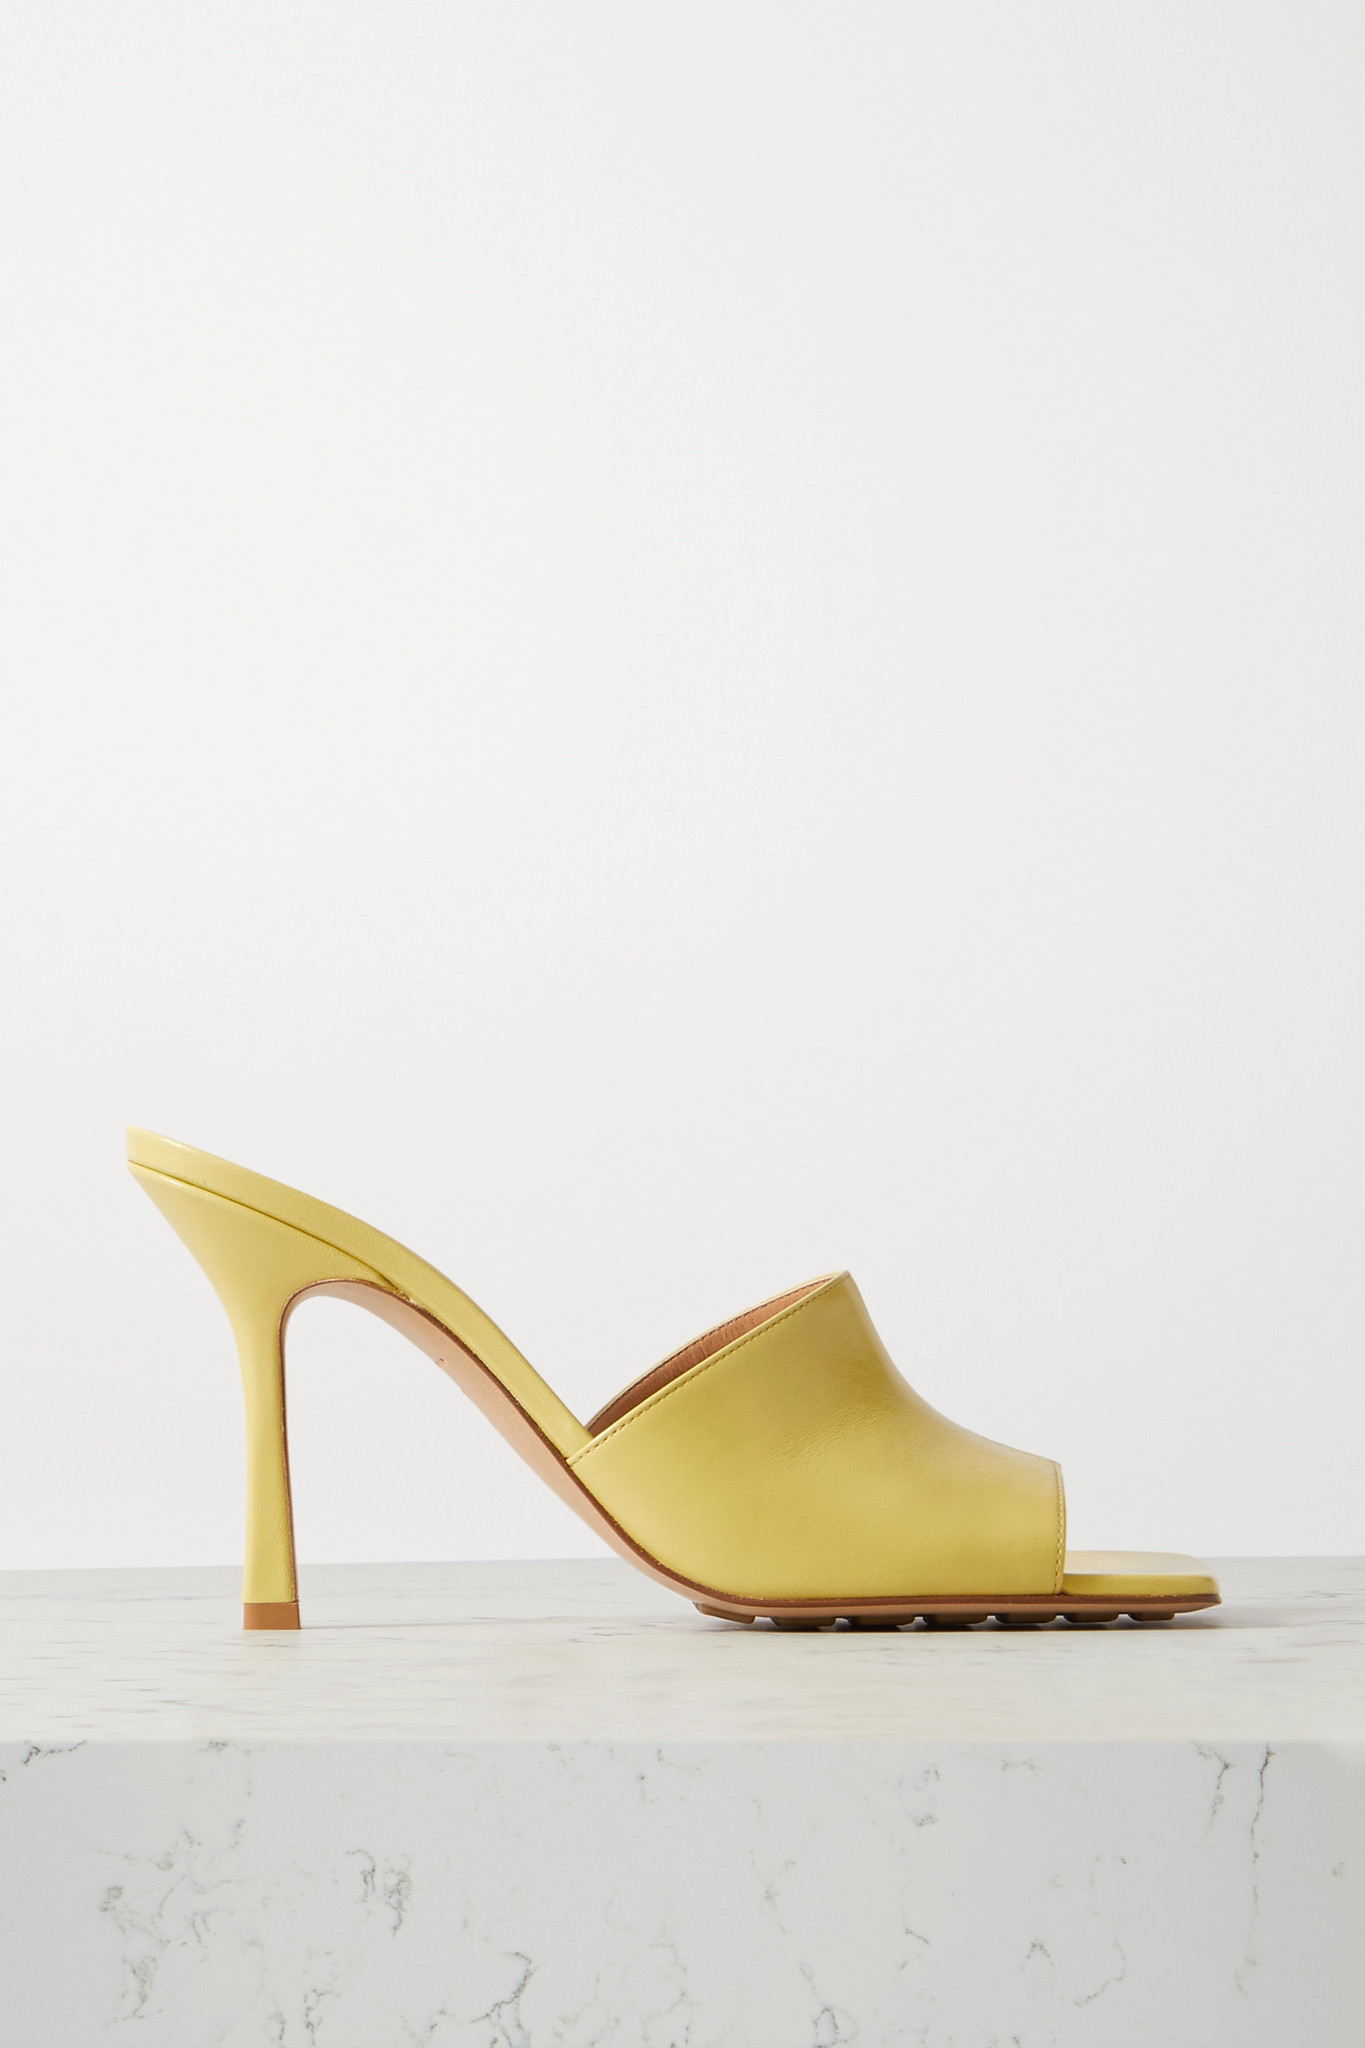 BOTTEGA VENETA - Leather Mules - Yellow - IT36.5